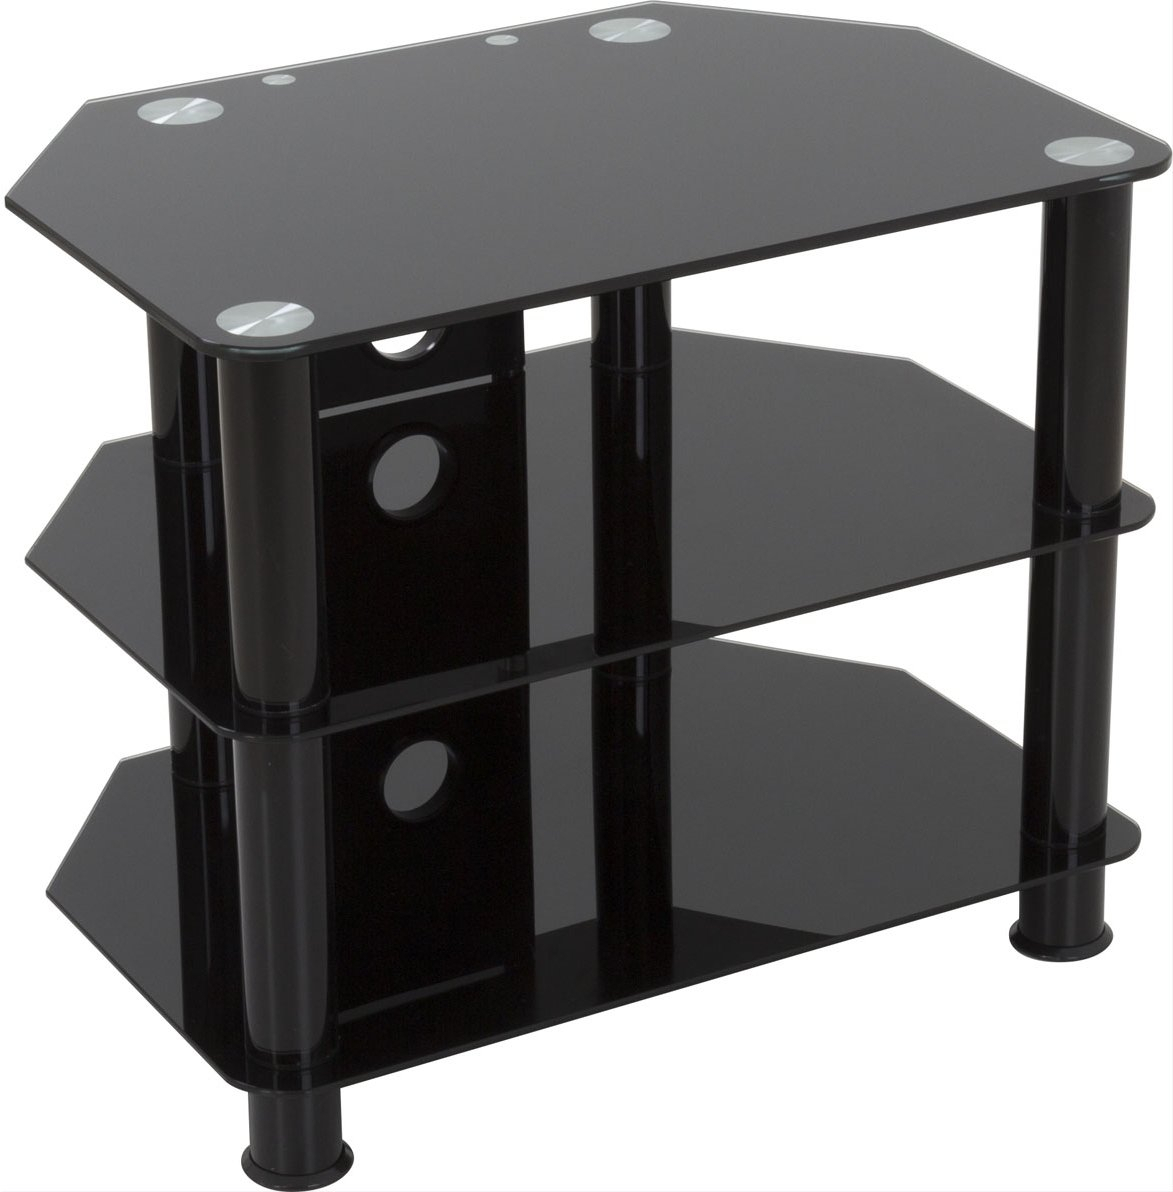 Avf Sdc600cmbb Universal Black Glass And Legs Tv Stand For For Tier Entertainment Tv Stands In Black (View 9 of 15)